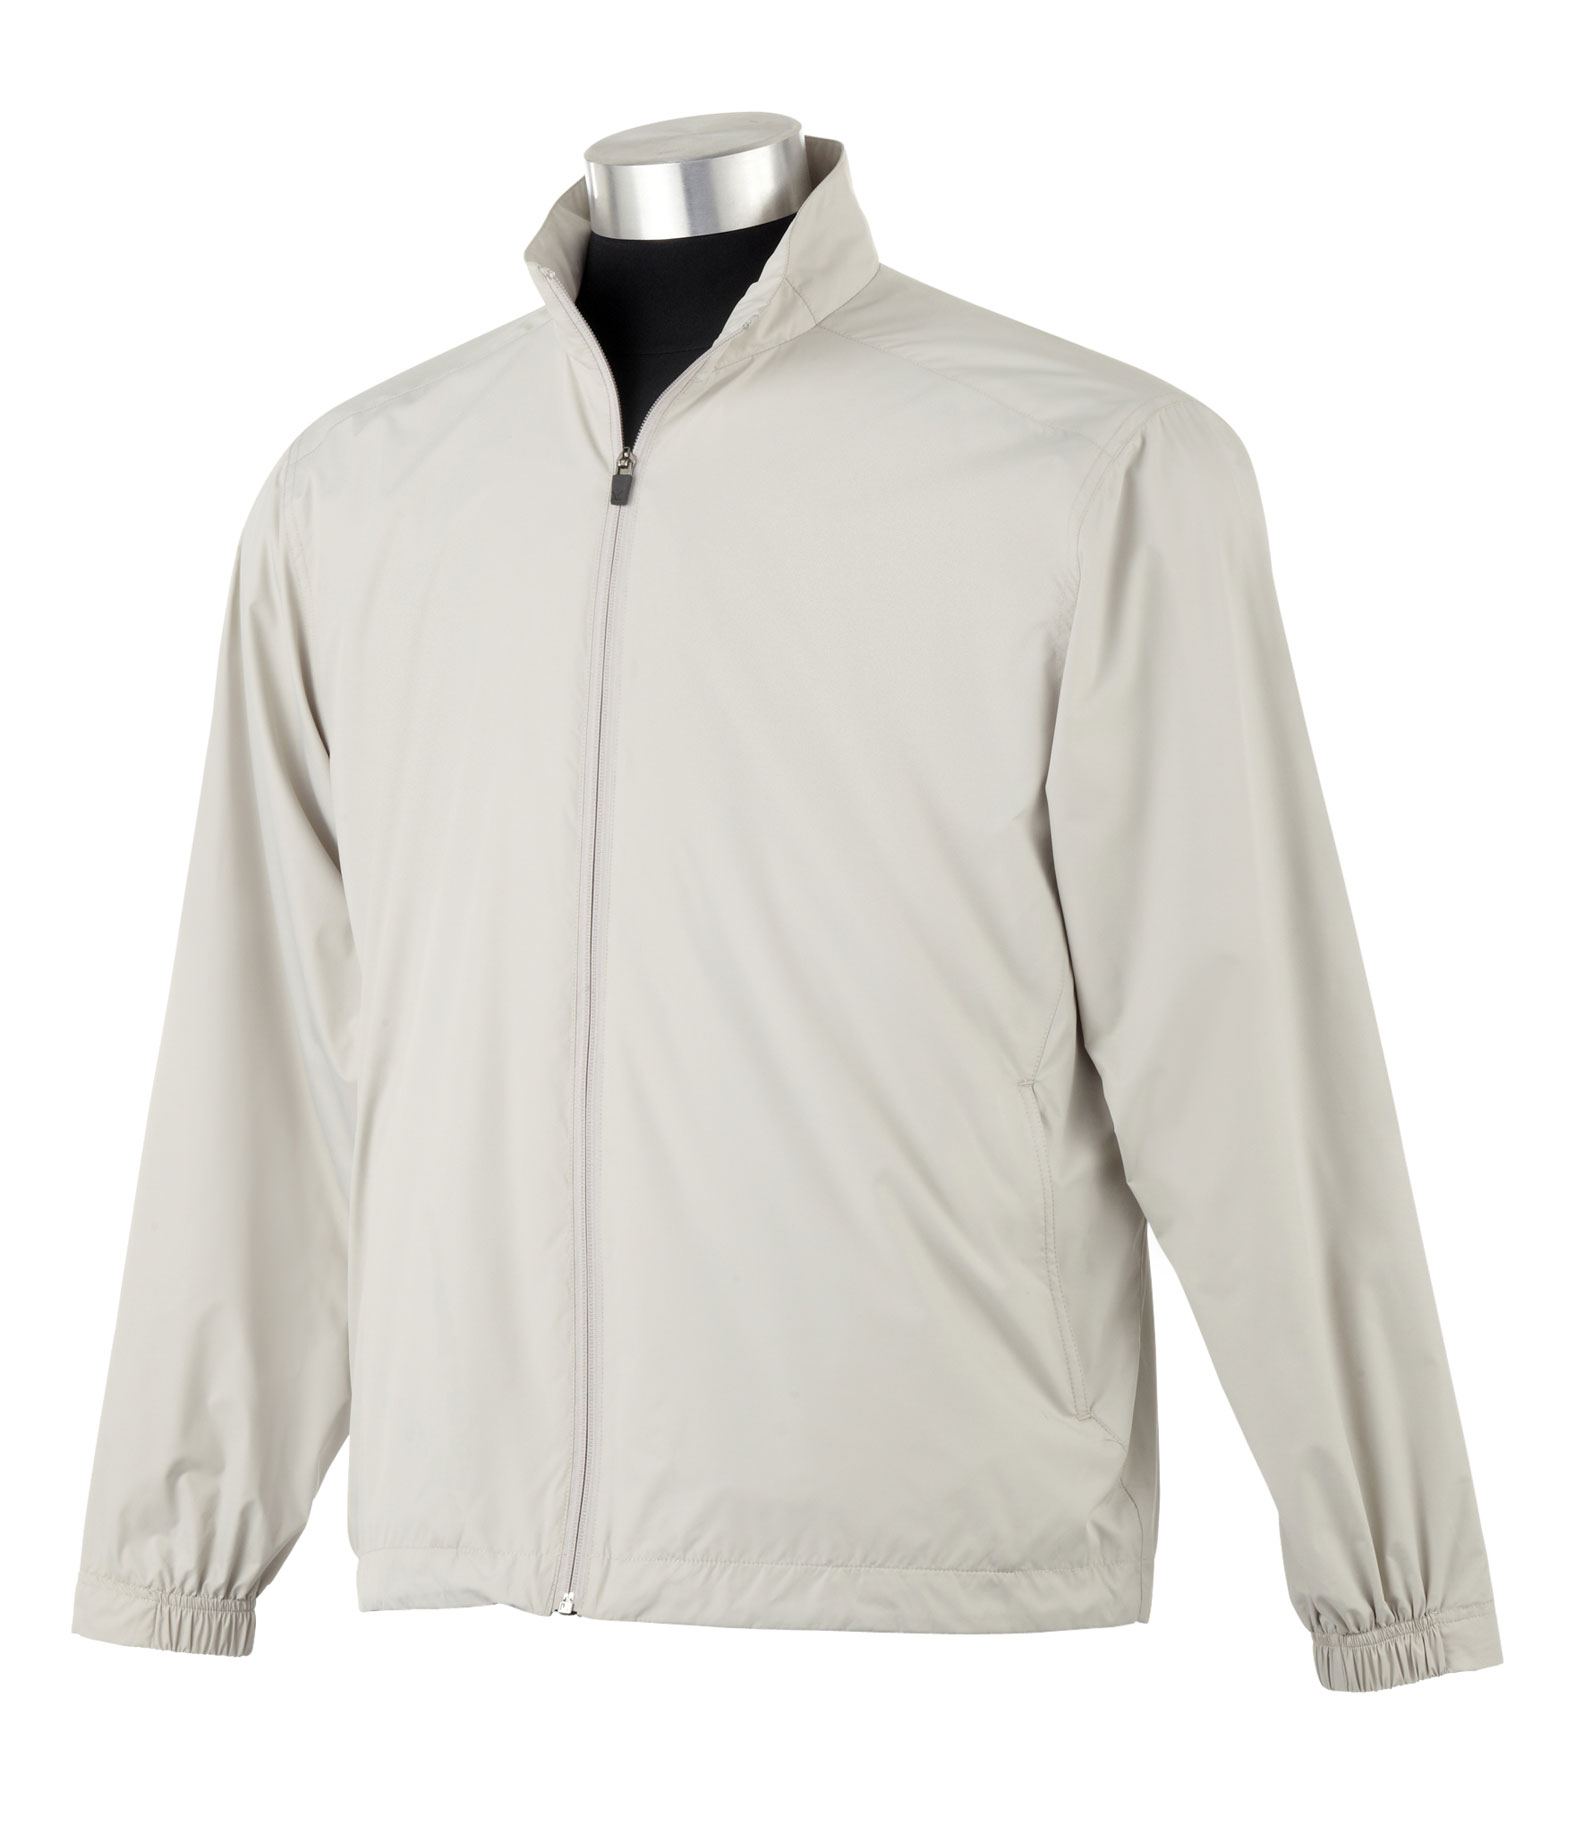 Callaway Adult Tournament Wind Jacket